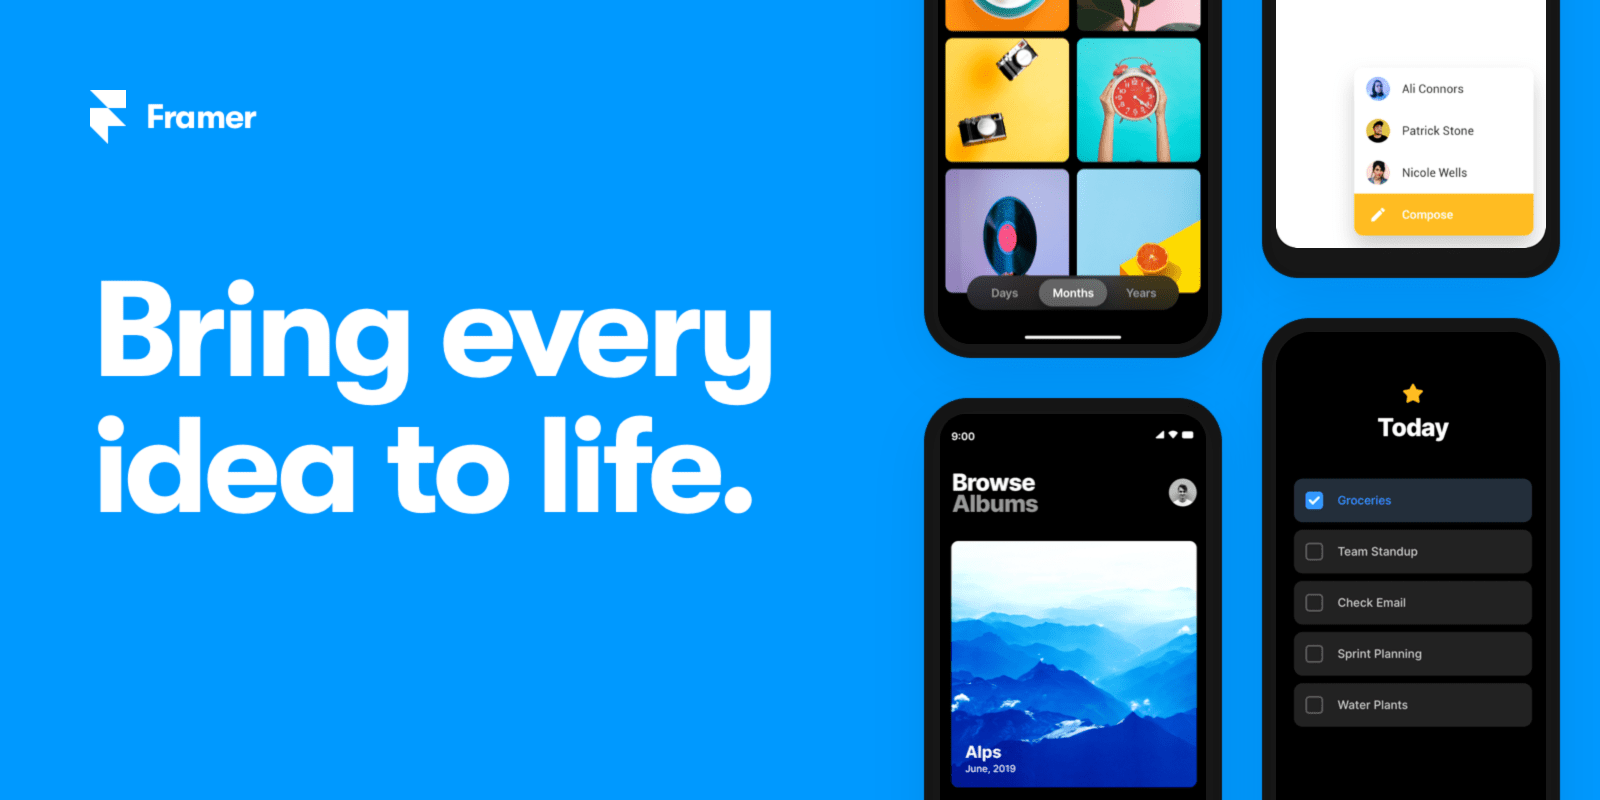 Framer: The prototyping tool for teams